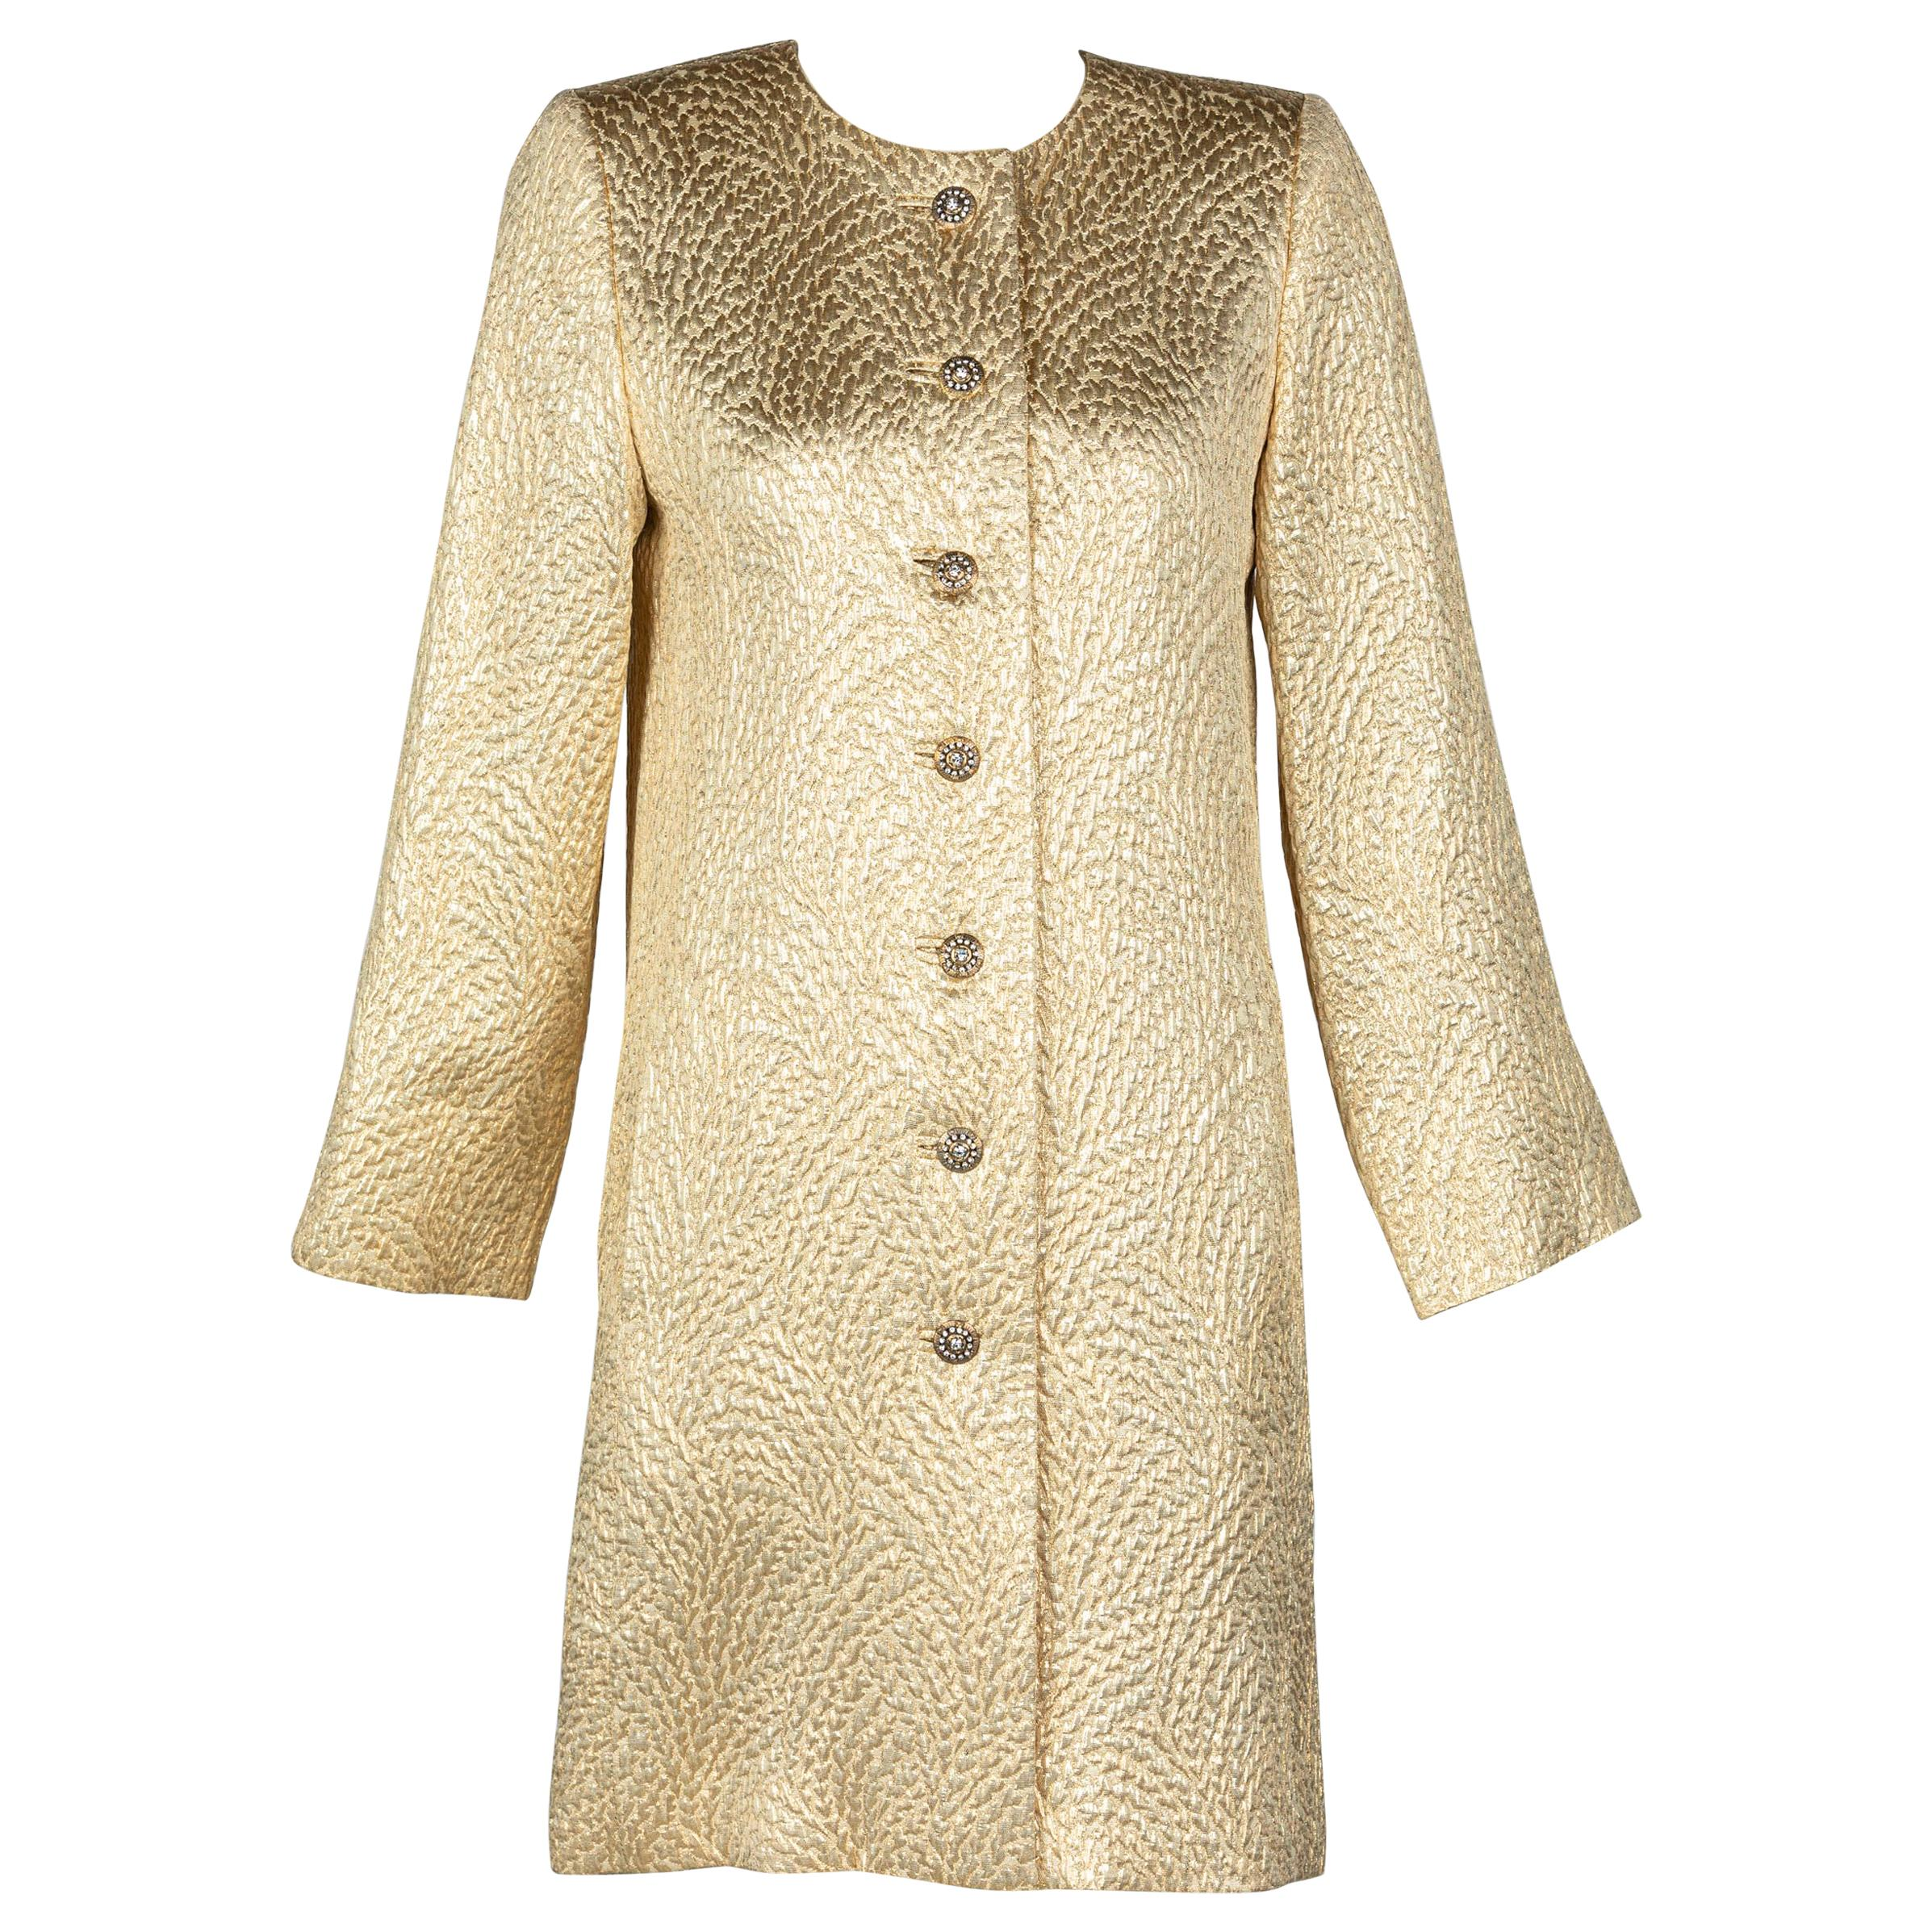 Yves Saint Laurent Gold Evening Coat w/ Jeweled Buttons YSL, 1990s